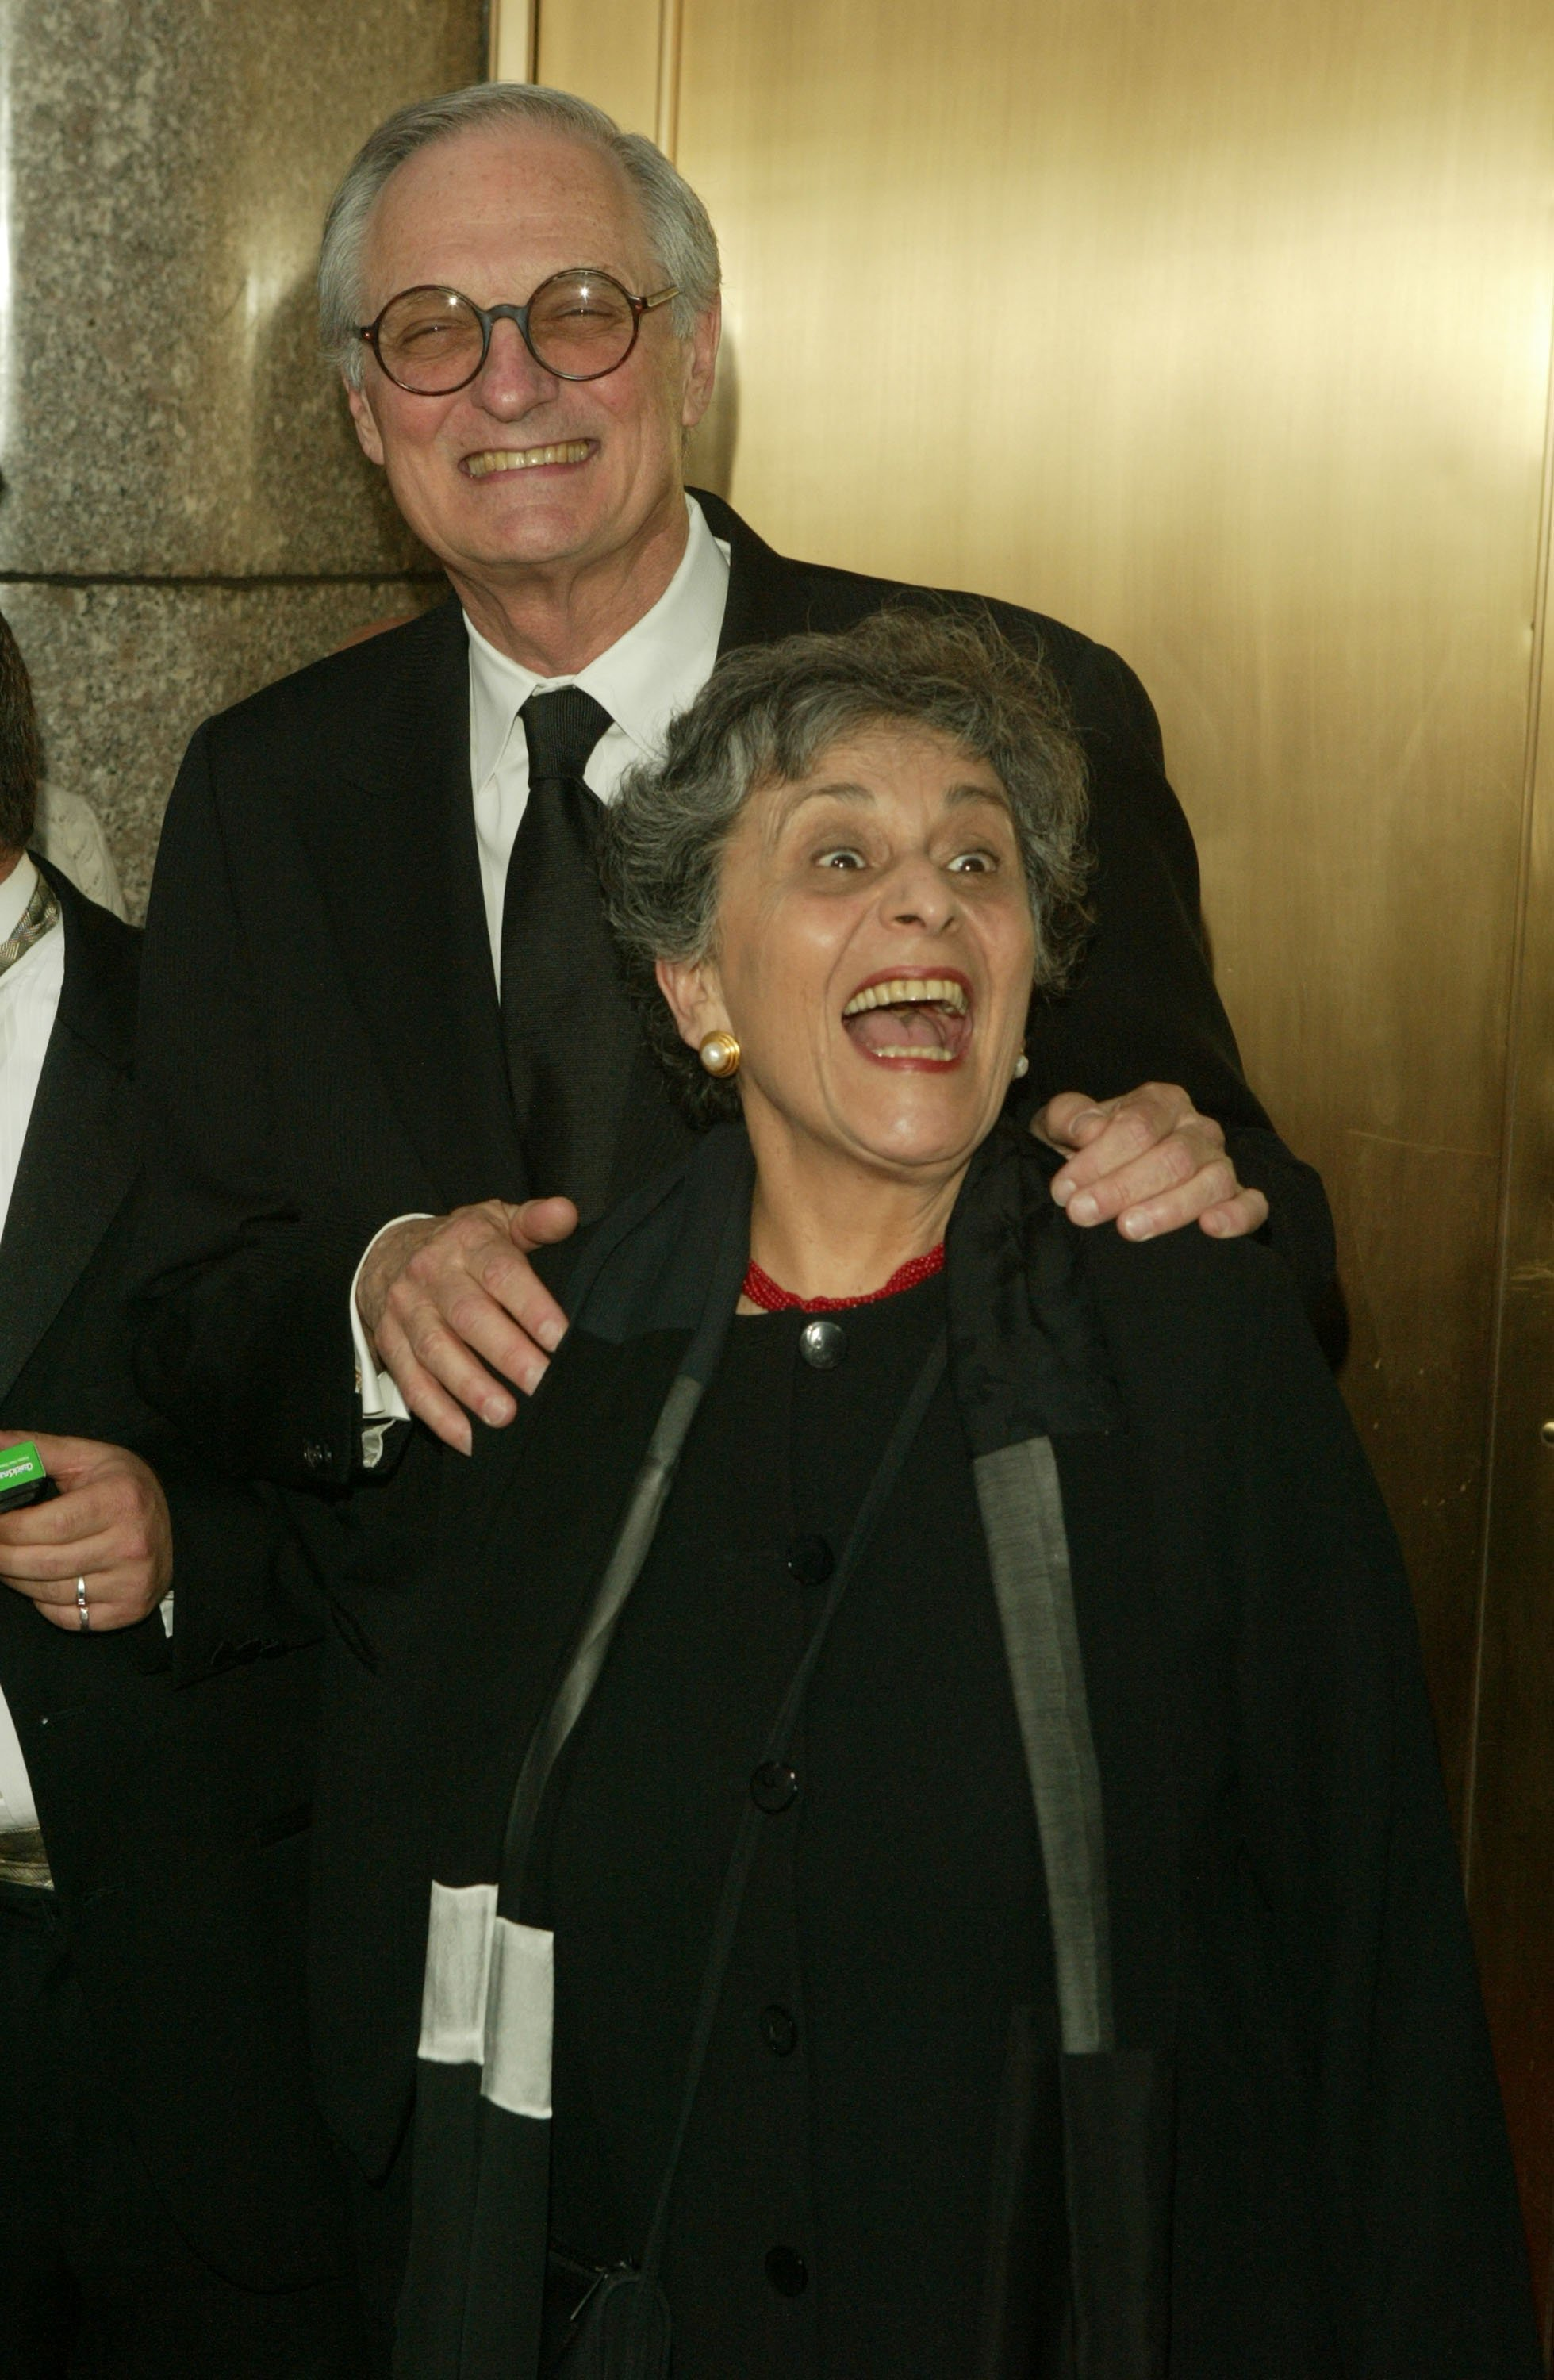 Alan Alda and his wife Arlene Alda at the 59th Annual Tony Awards on June 5, 2005 in New York City | Photo: Getty Images